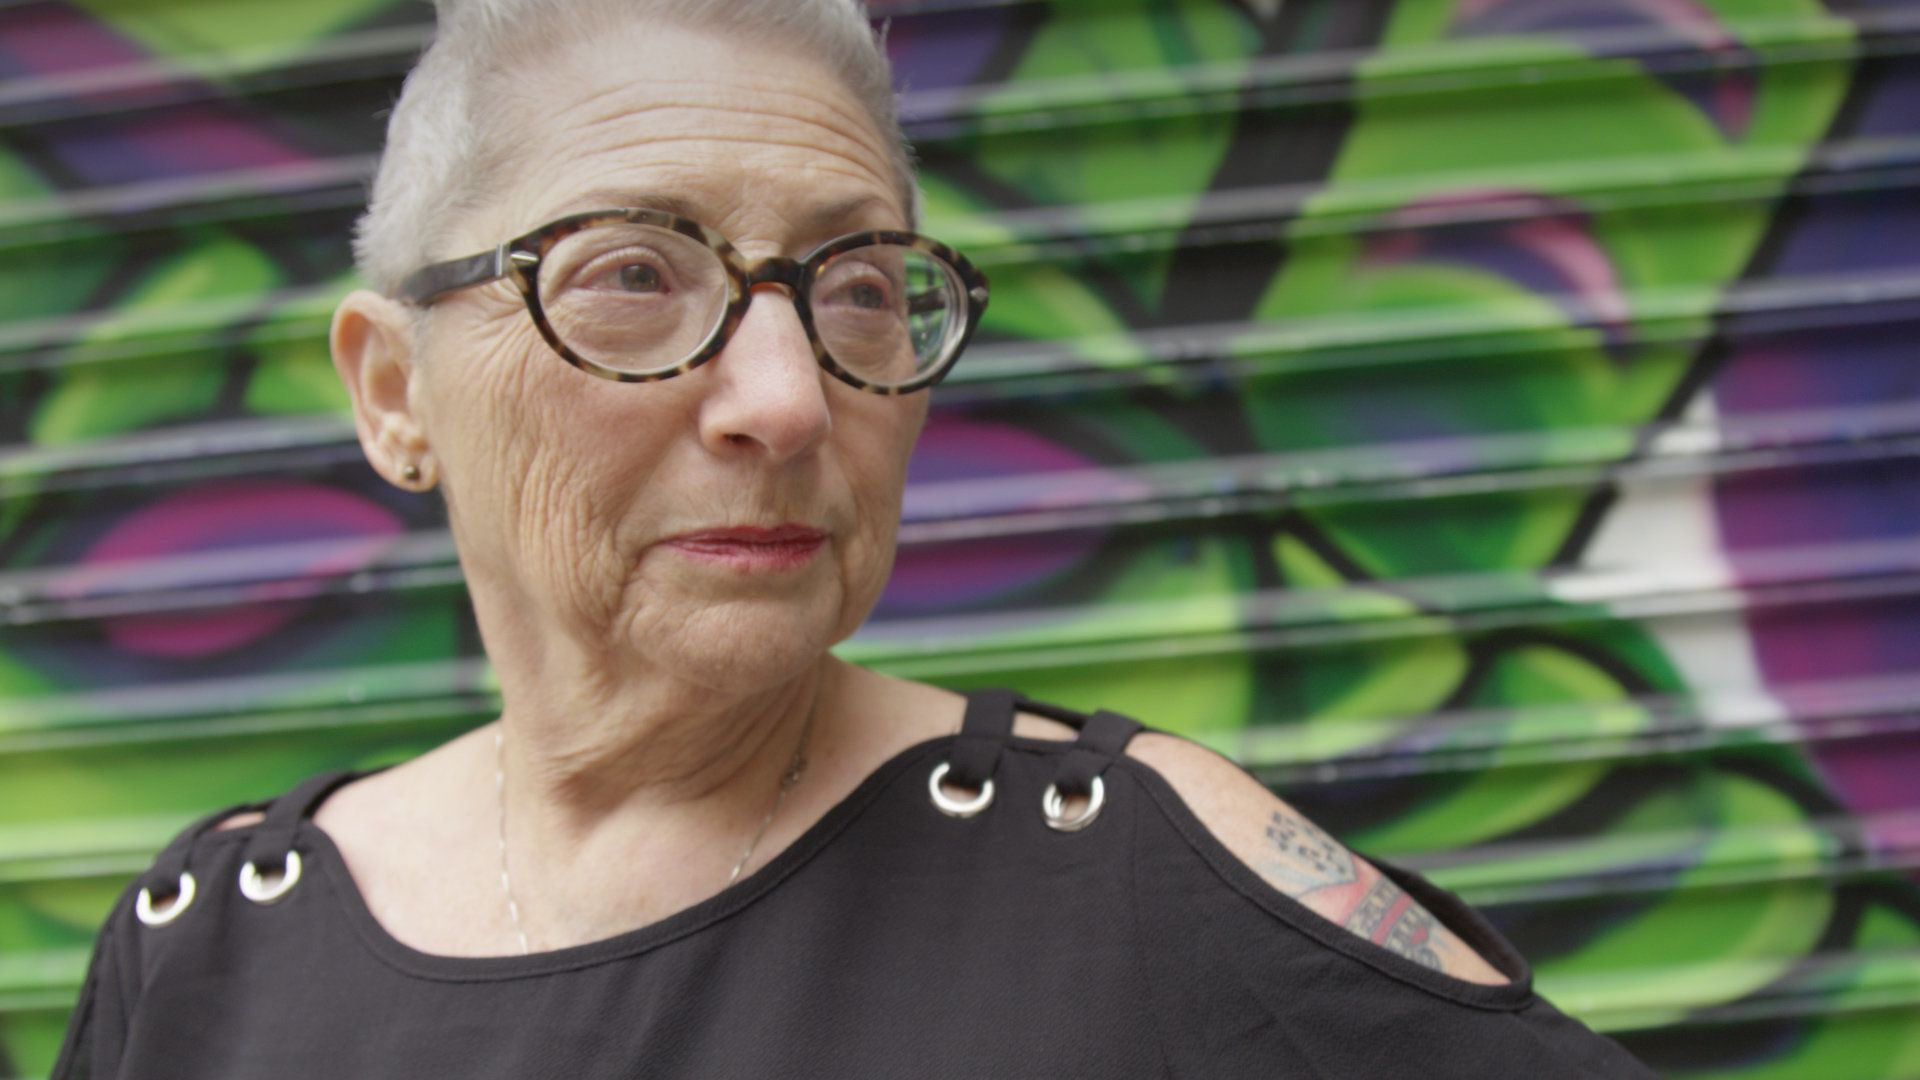 This Woman's Proud To Be 80 Years Old ―- And Got A Tattoo To Celebrate